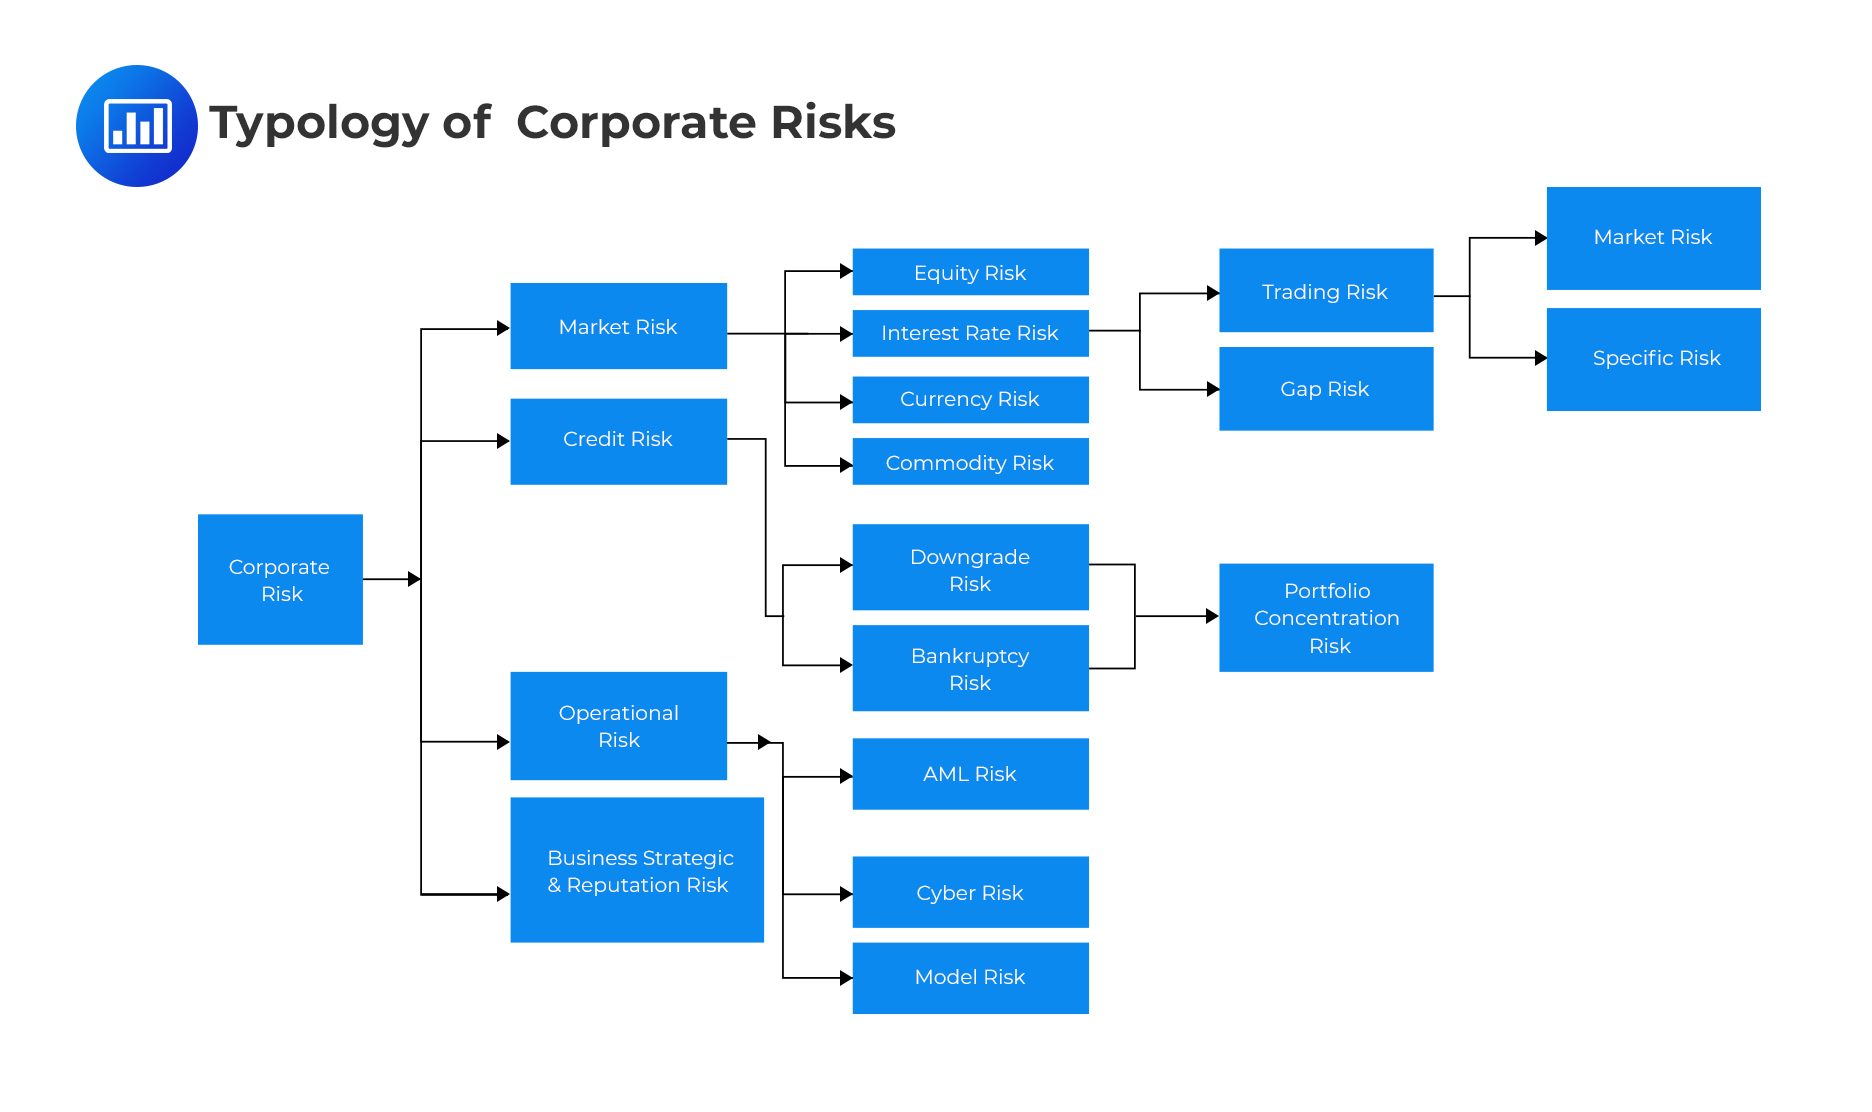 typology of corporate risks